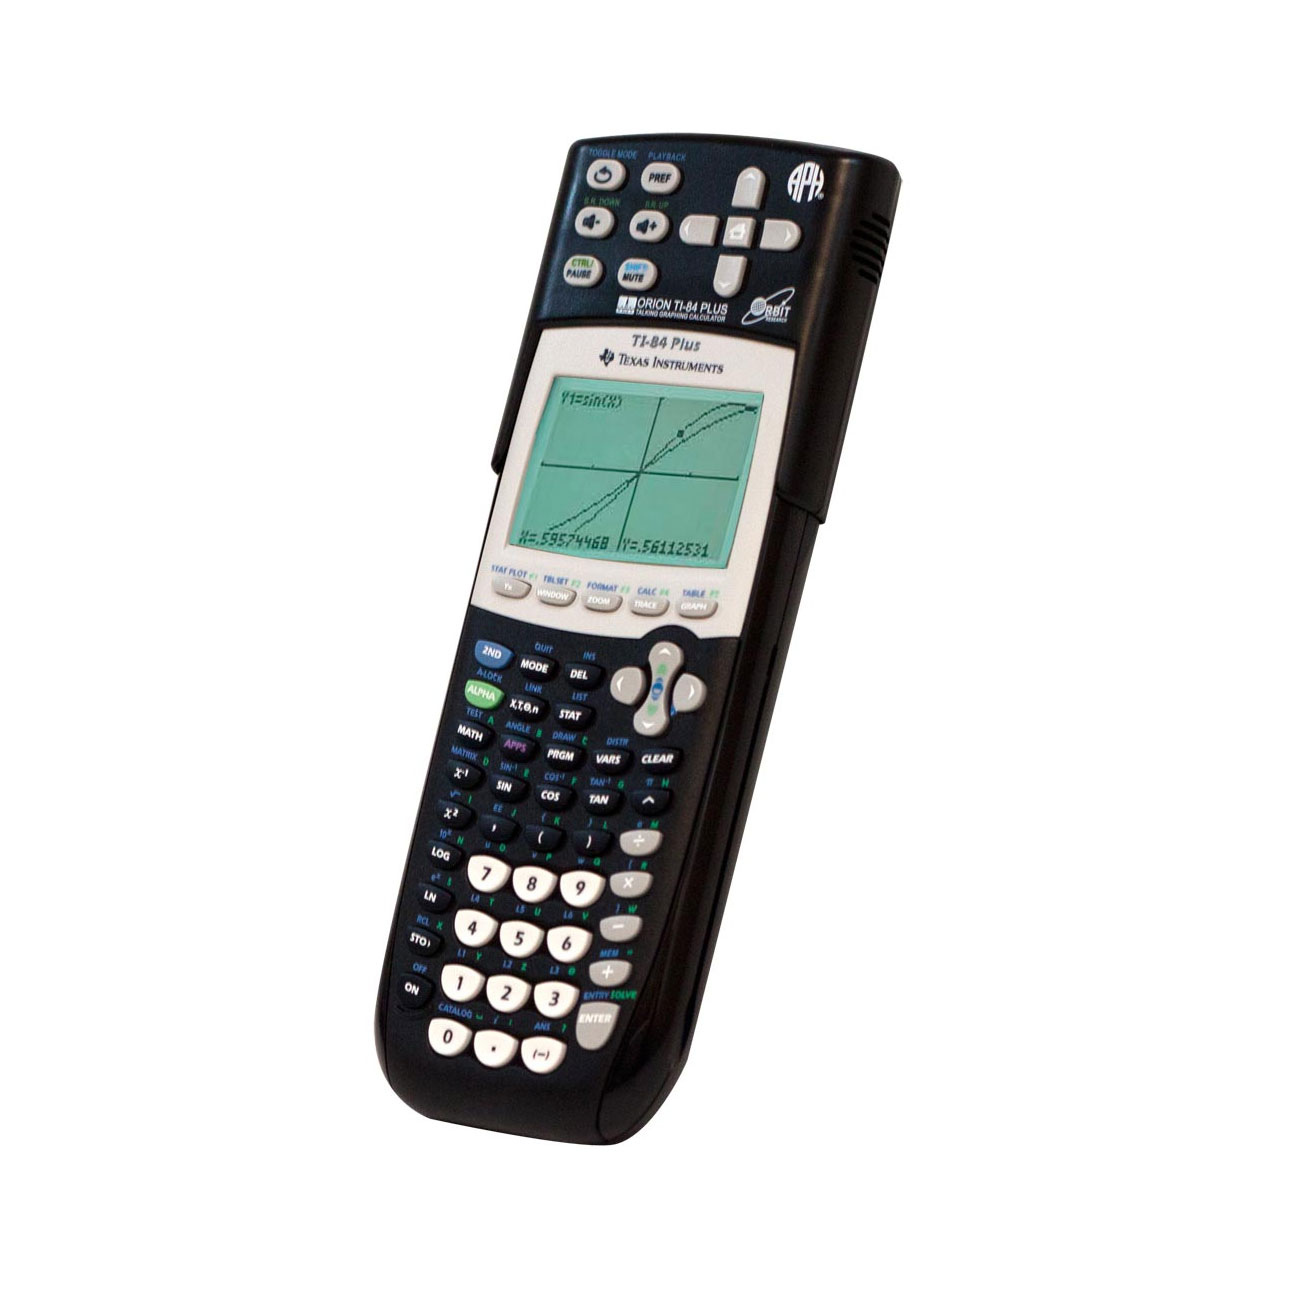 Orion Talking Graphing Calculator TI-84